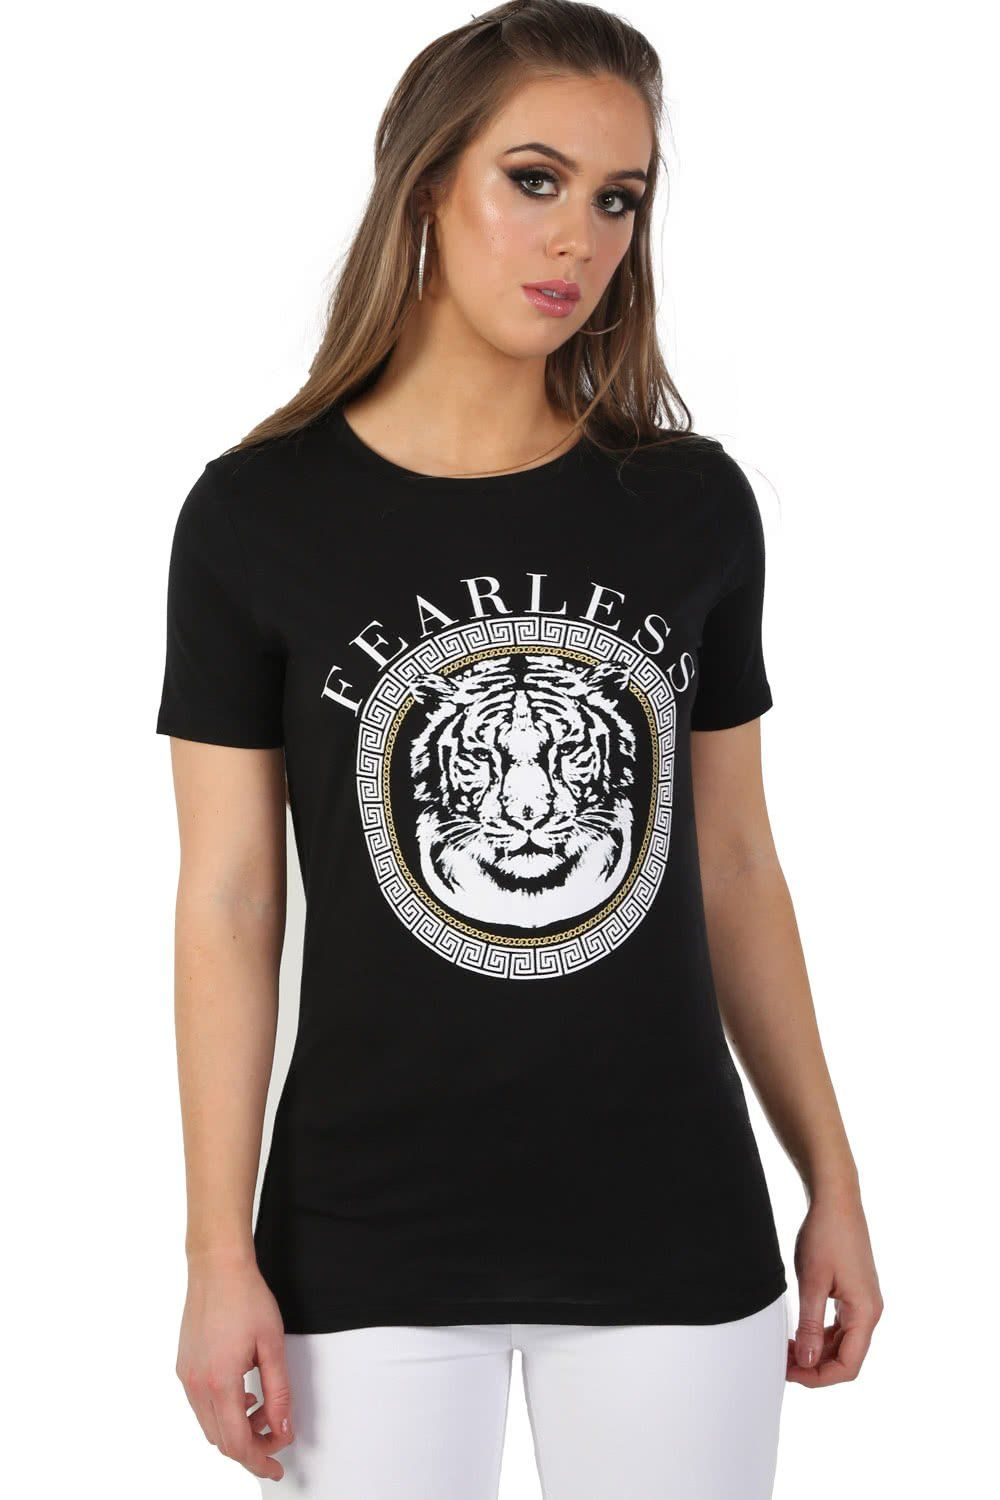 Fearless Slogan Print Tiger Motif Short Sleeve T-Shirt in Black 1